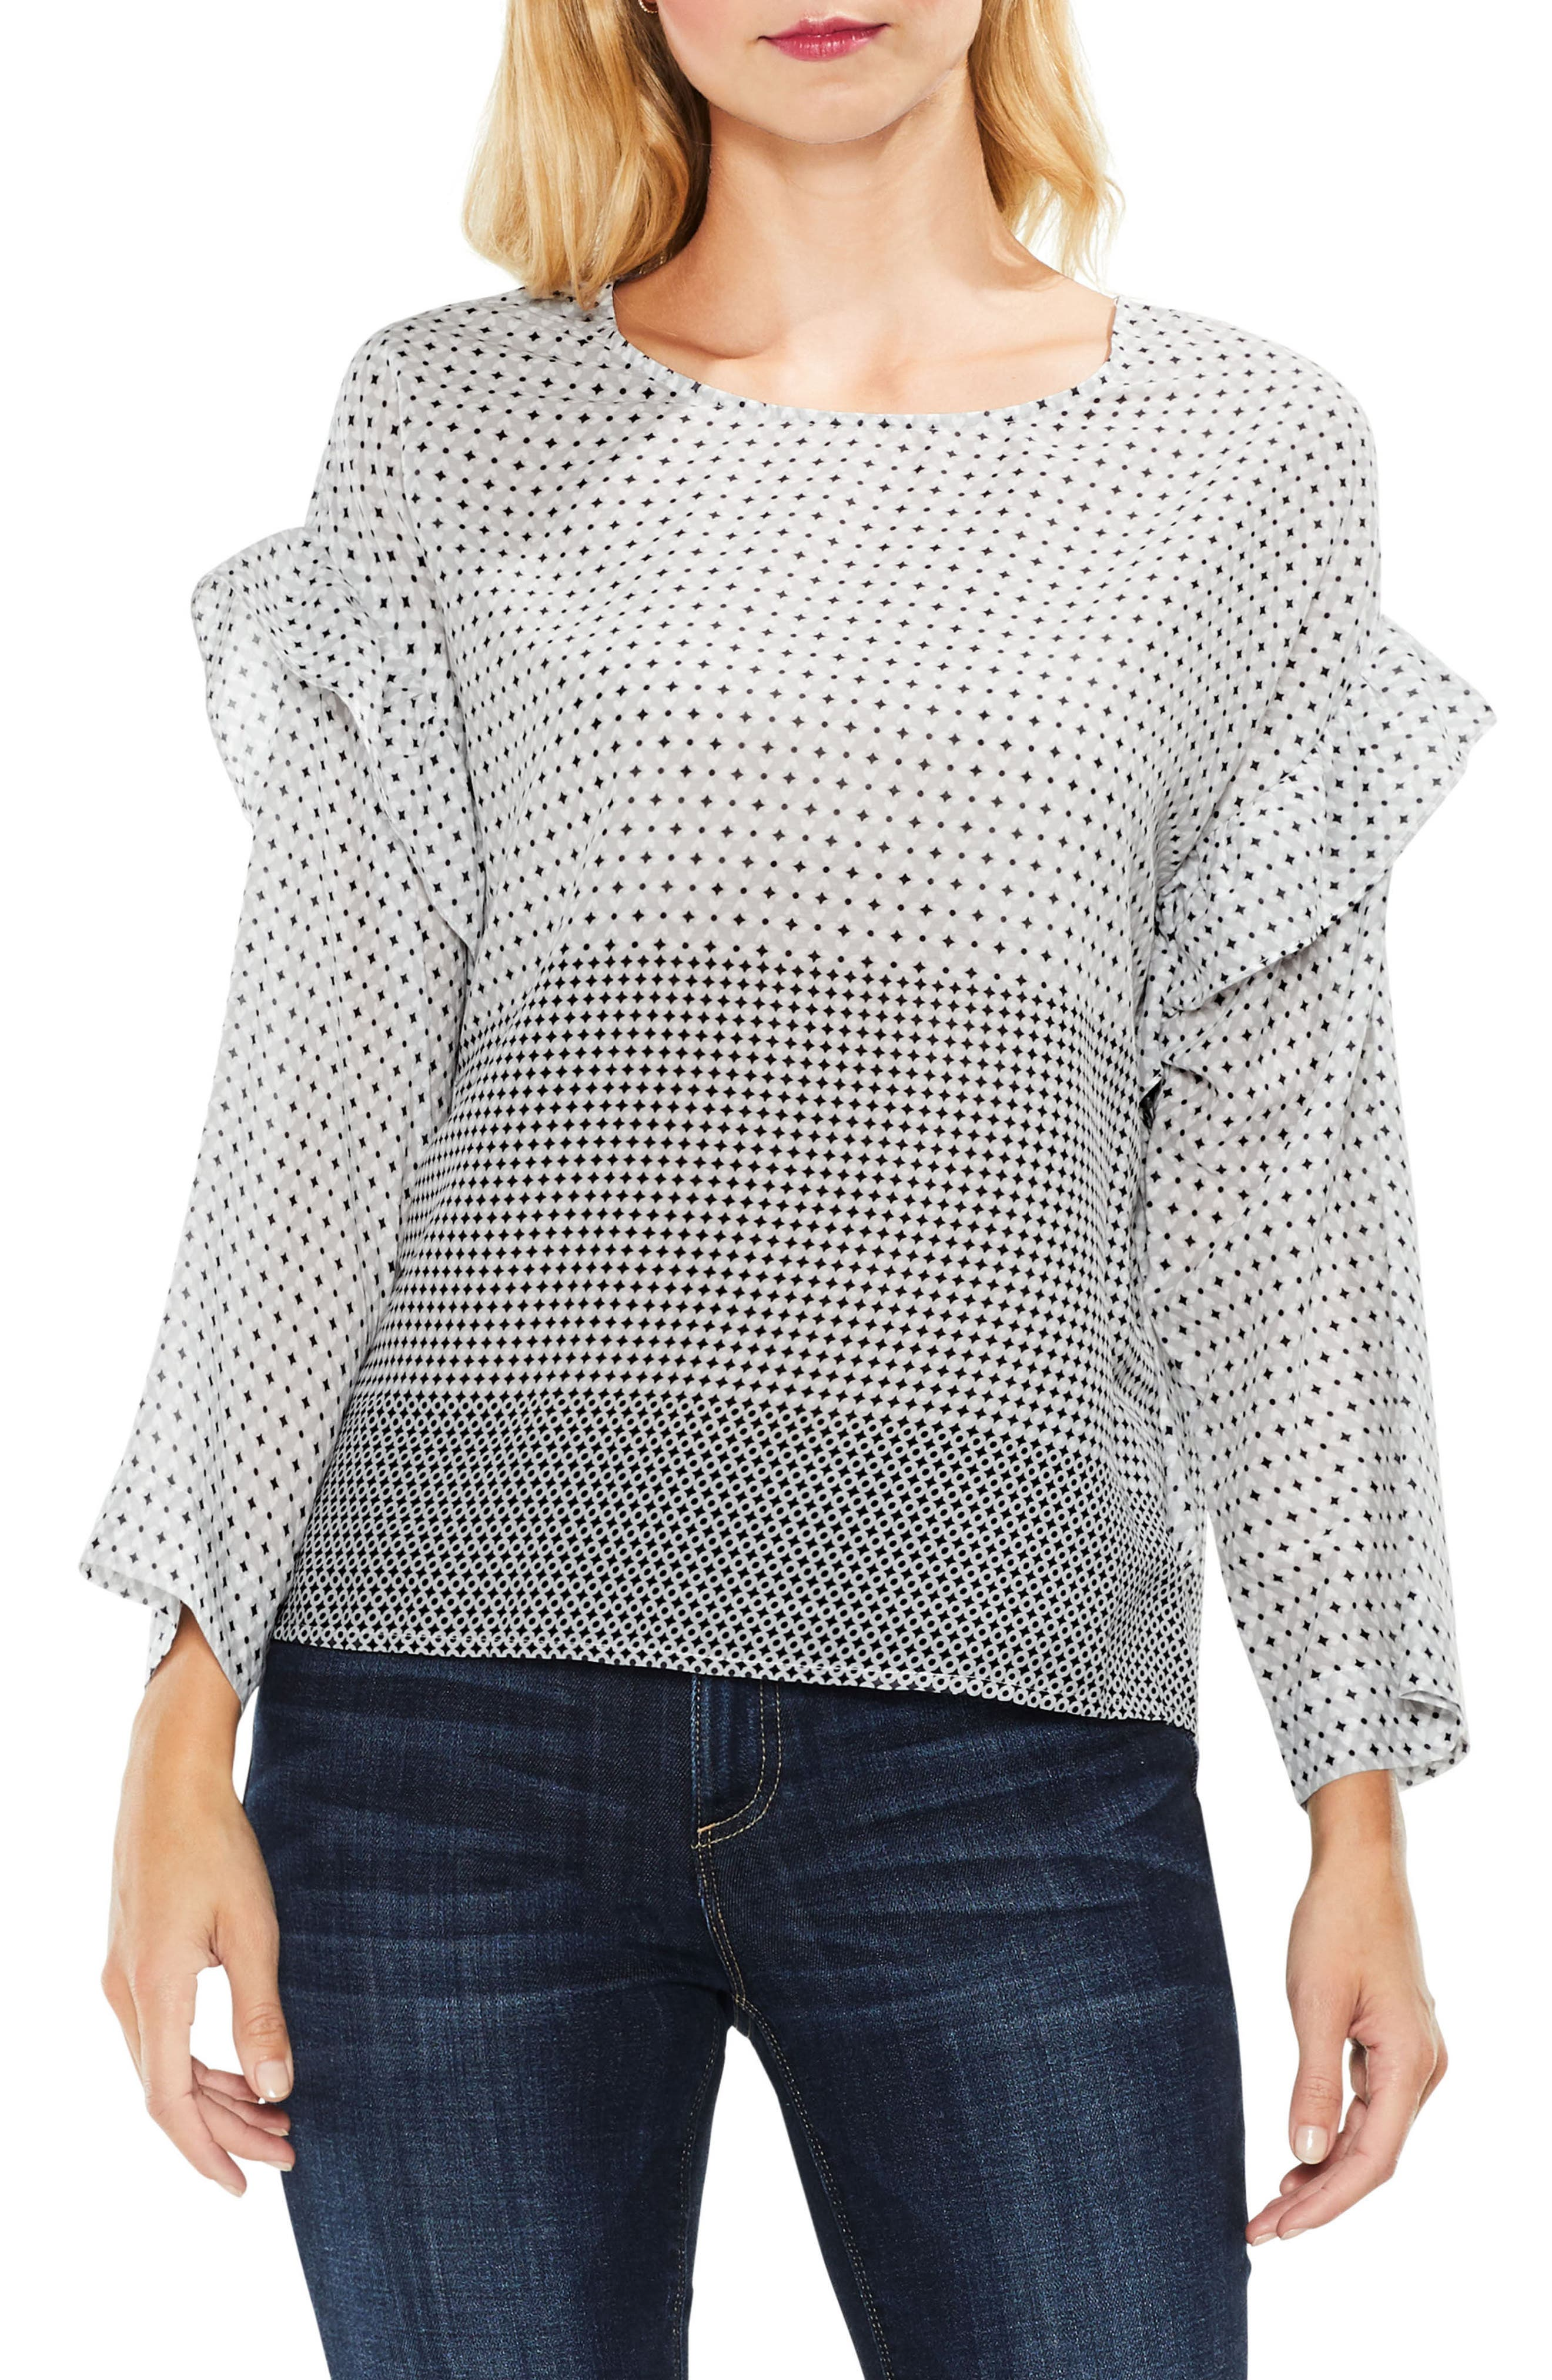 Two by VInce Camuto Quiet Tile Border Ruffle Top,                             Main thumbnail 1, color,                             063